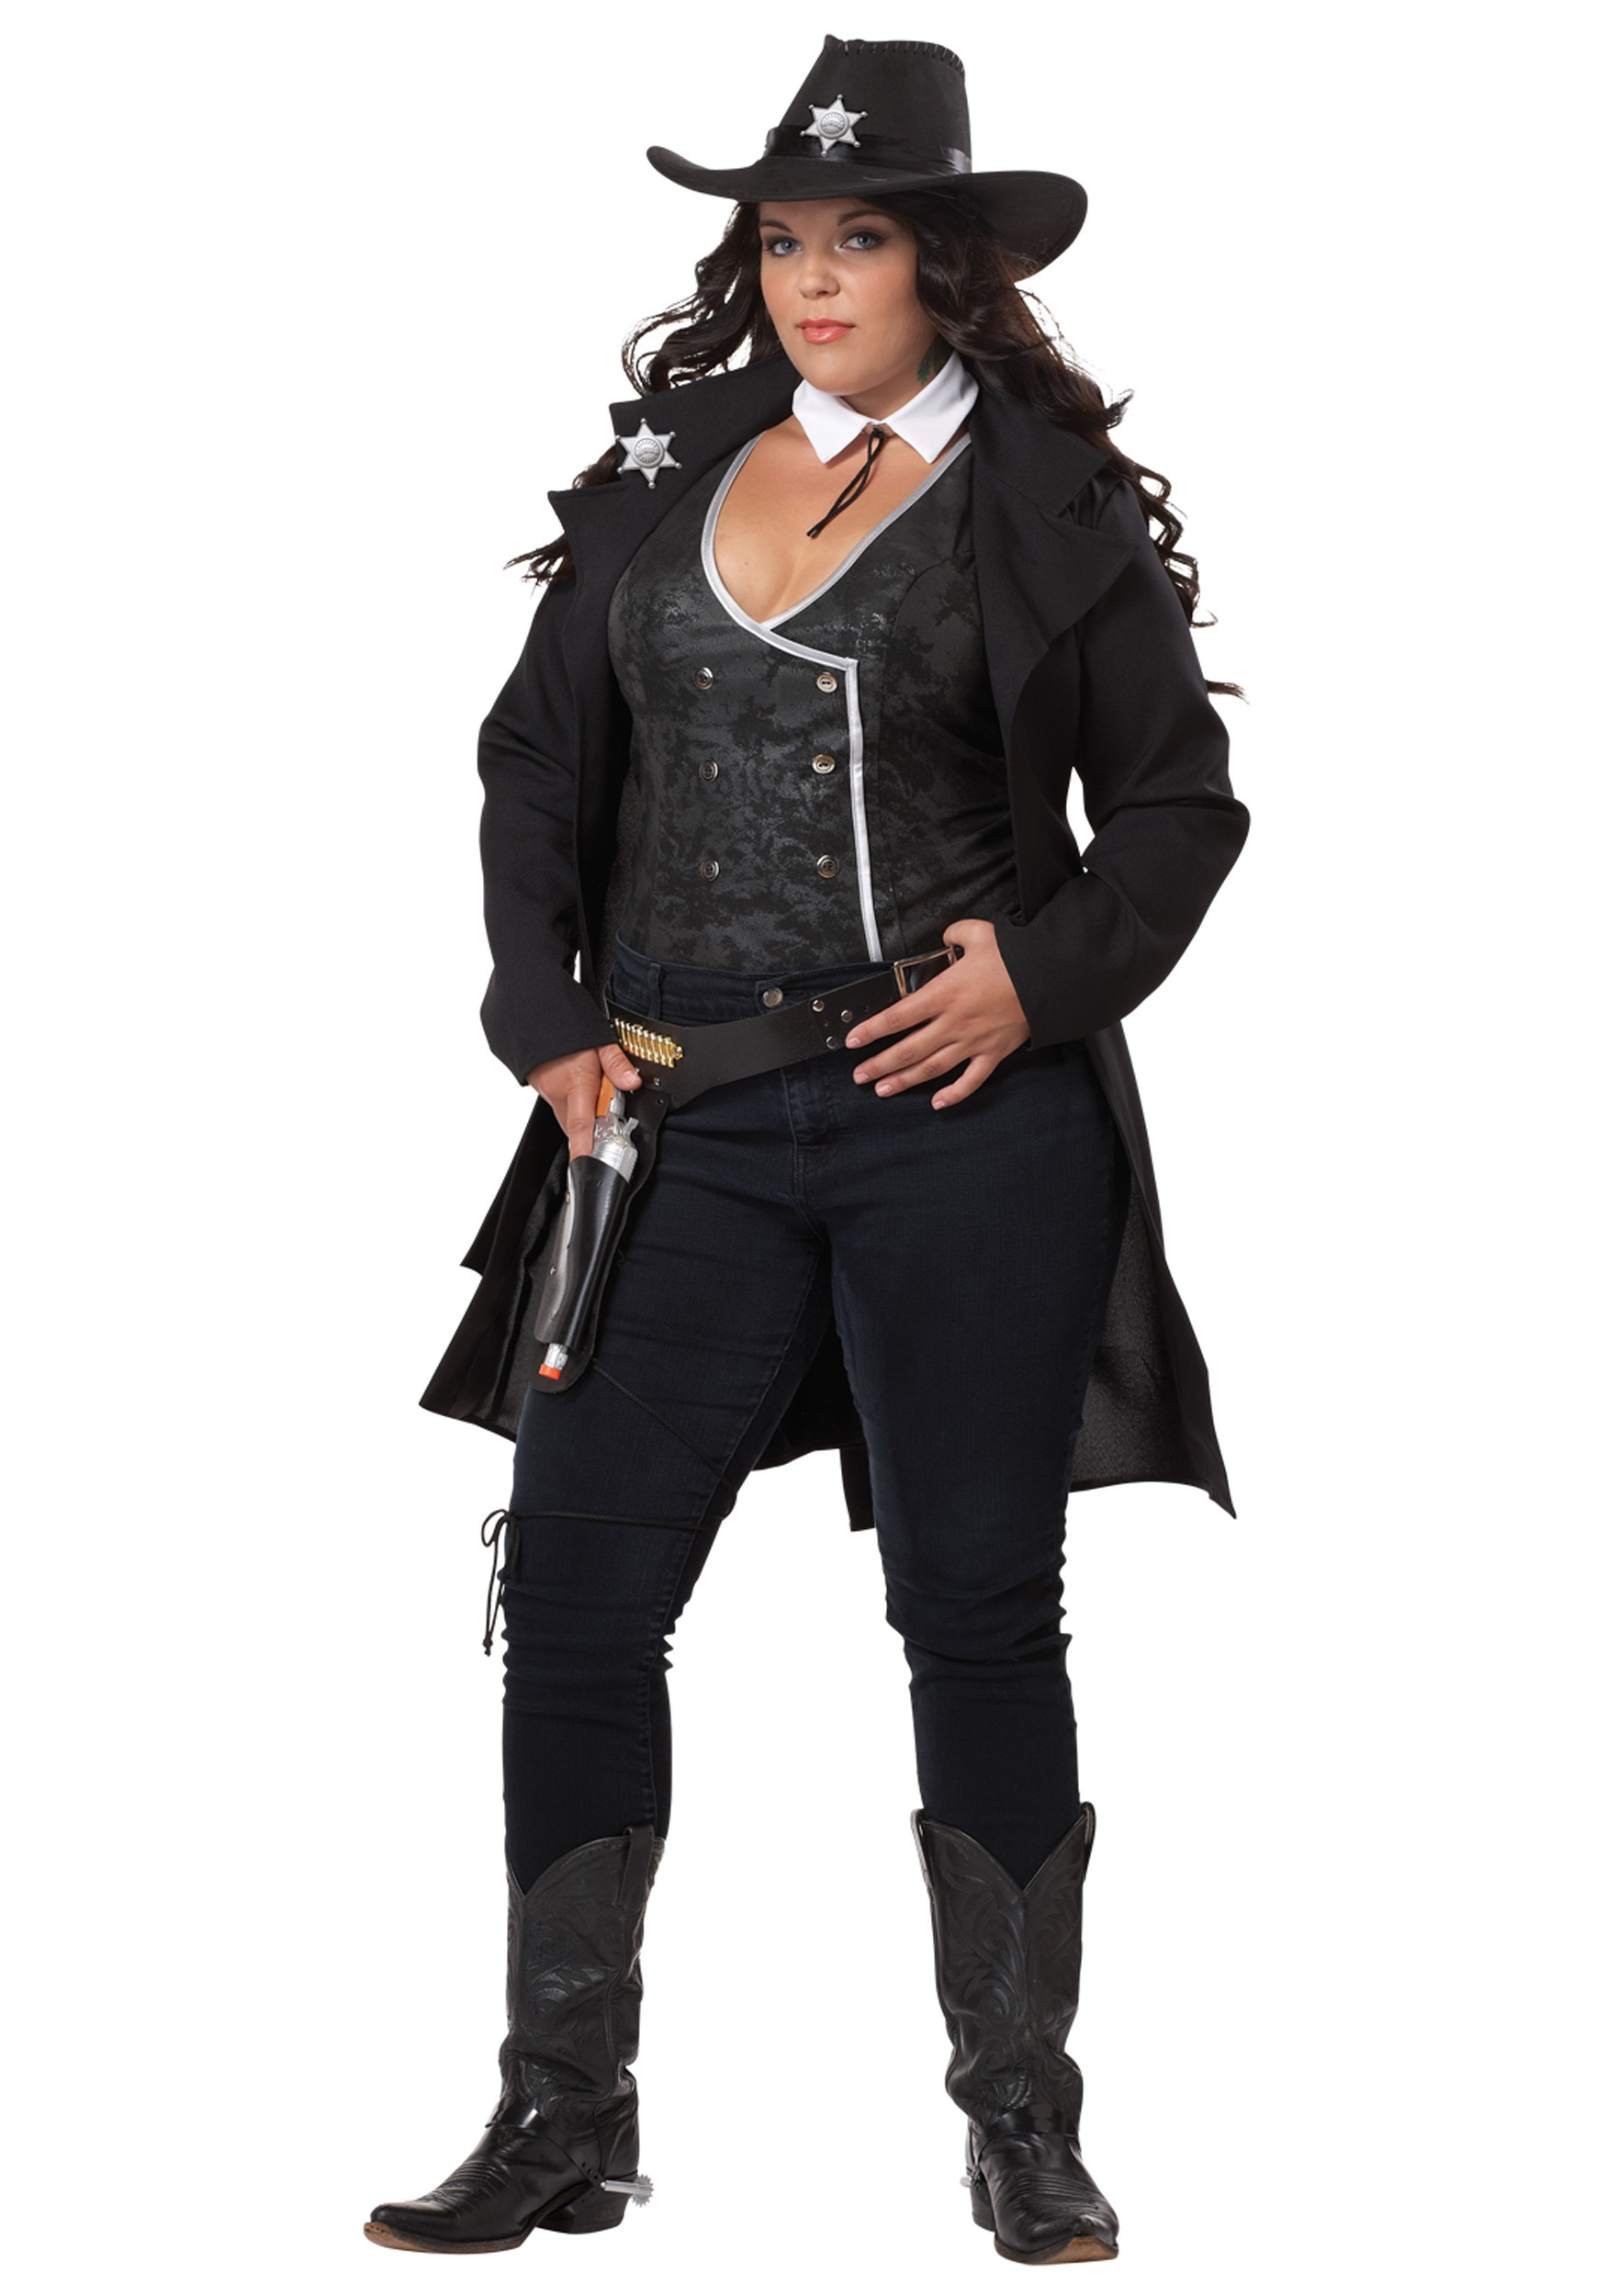 Plus Size Round Em Up Cowgirl Costume  sc 1 st  Halloween Costumes & Plus Size Round Em Up Cowgirl Costume - Halloween Costumes